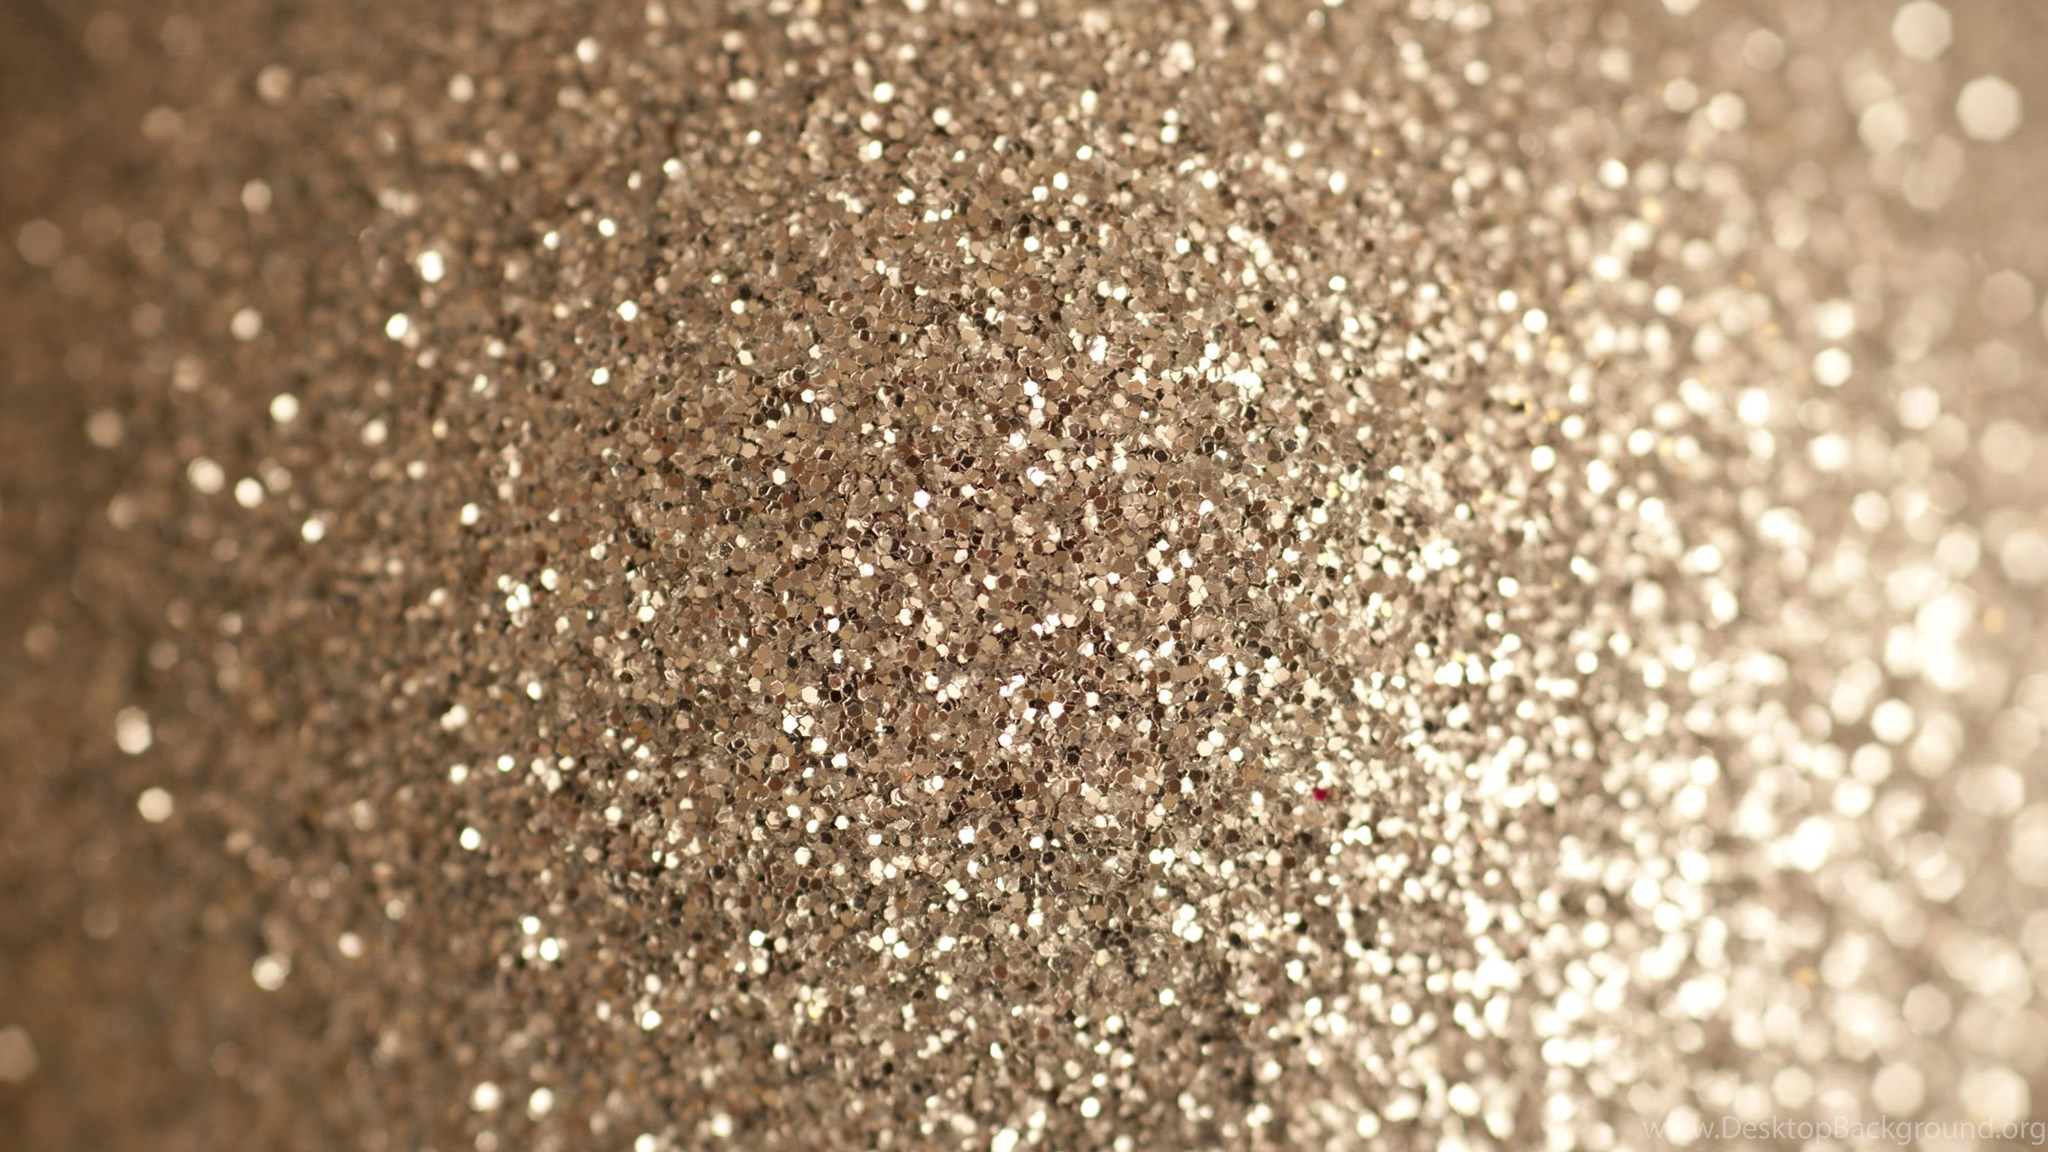 Abstract Gold Glitter Backgrounds « Free Stock Images